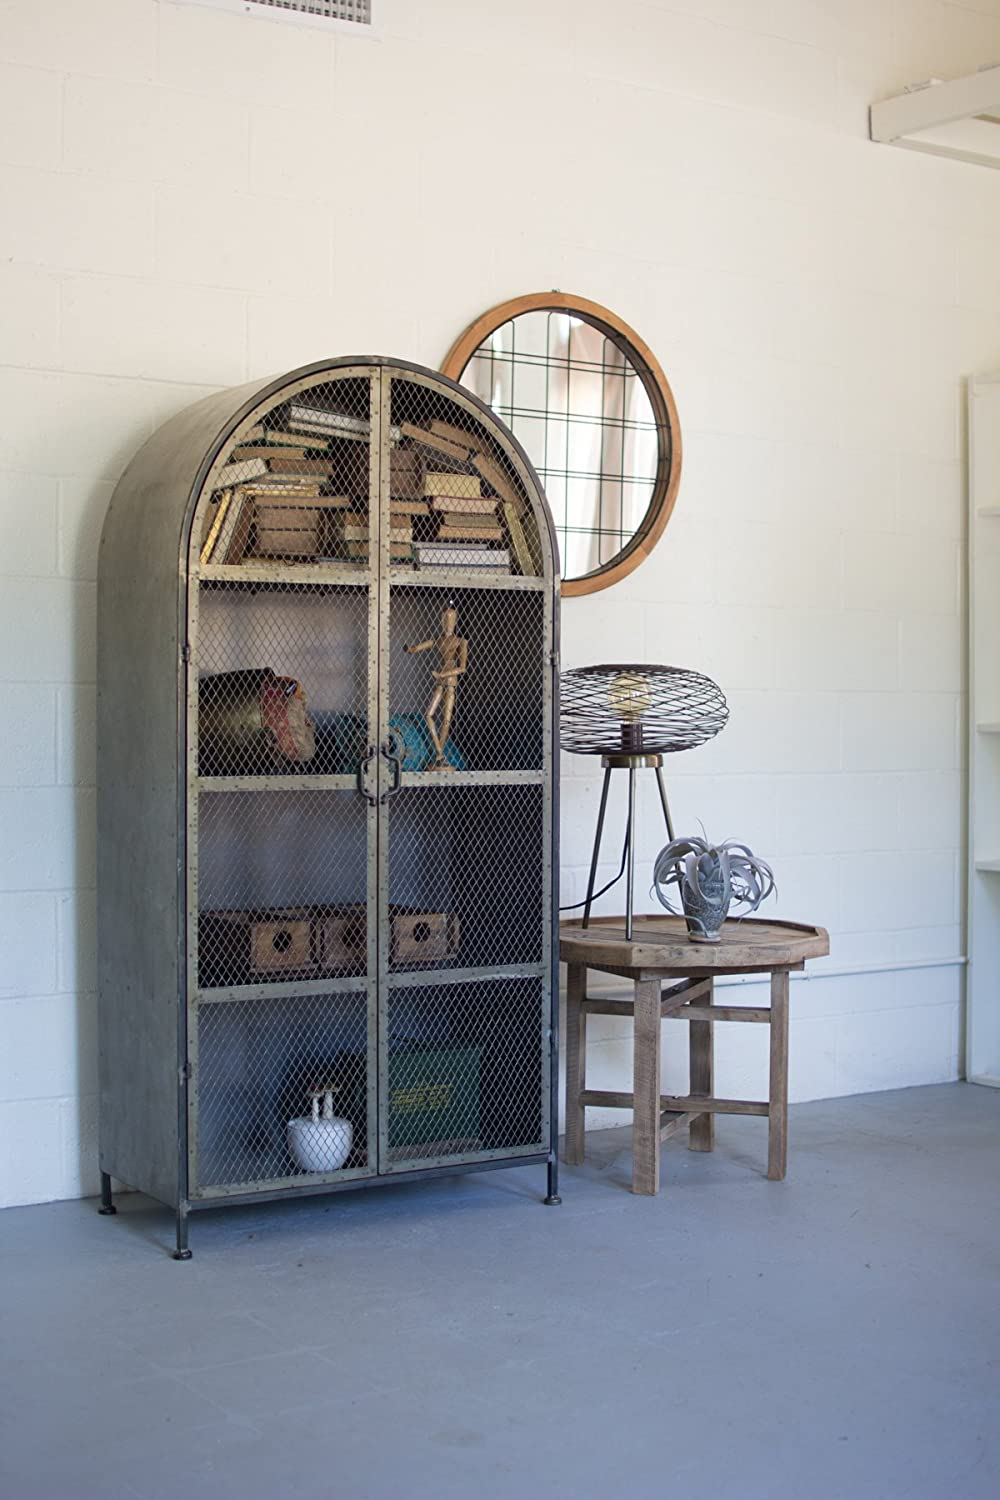 Amazon.com: GwG Outlet Arched Metal Cabinet with Two Wire Mesh Doors ...